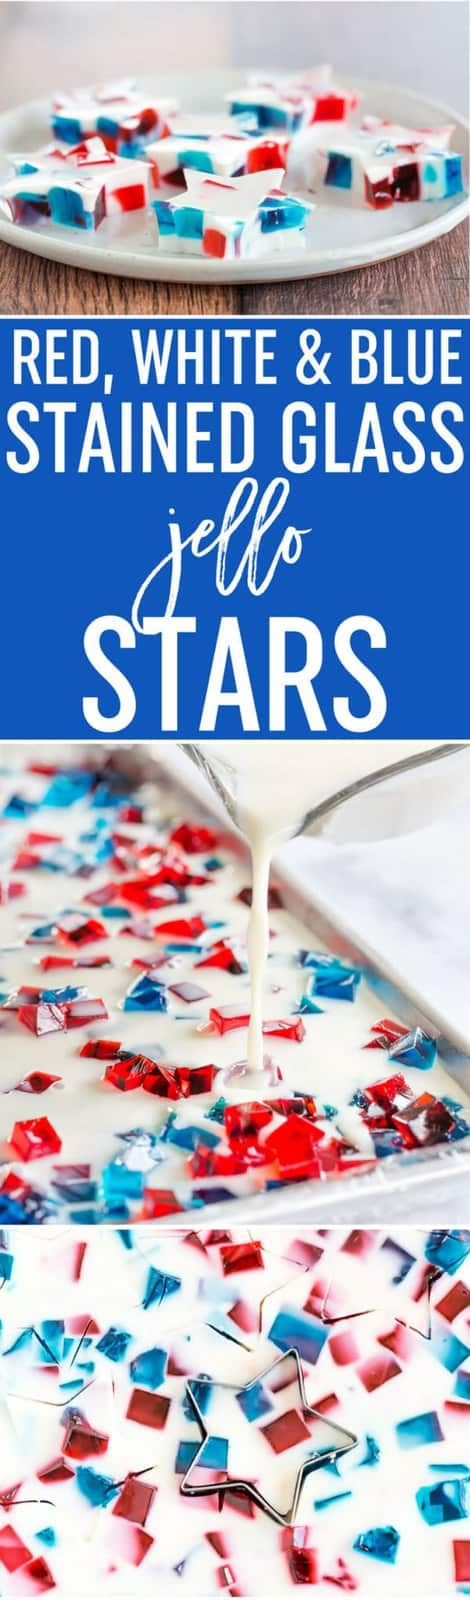 Red, White & Blue Stained Glass Jello Stars - A fun and easy treat for your 4th of July celebration!